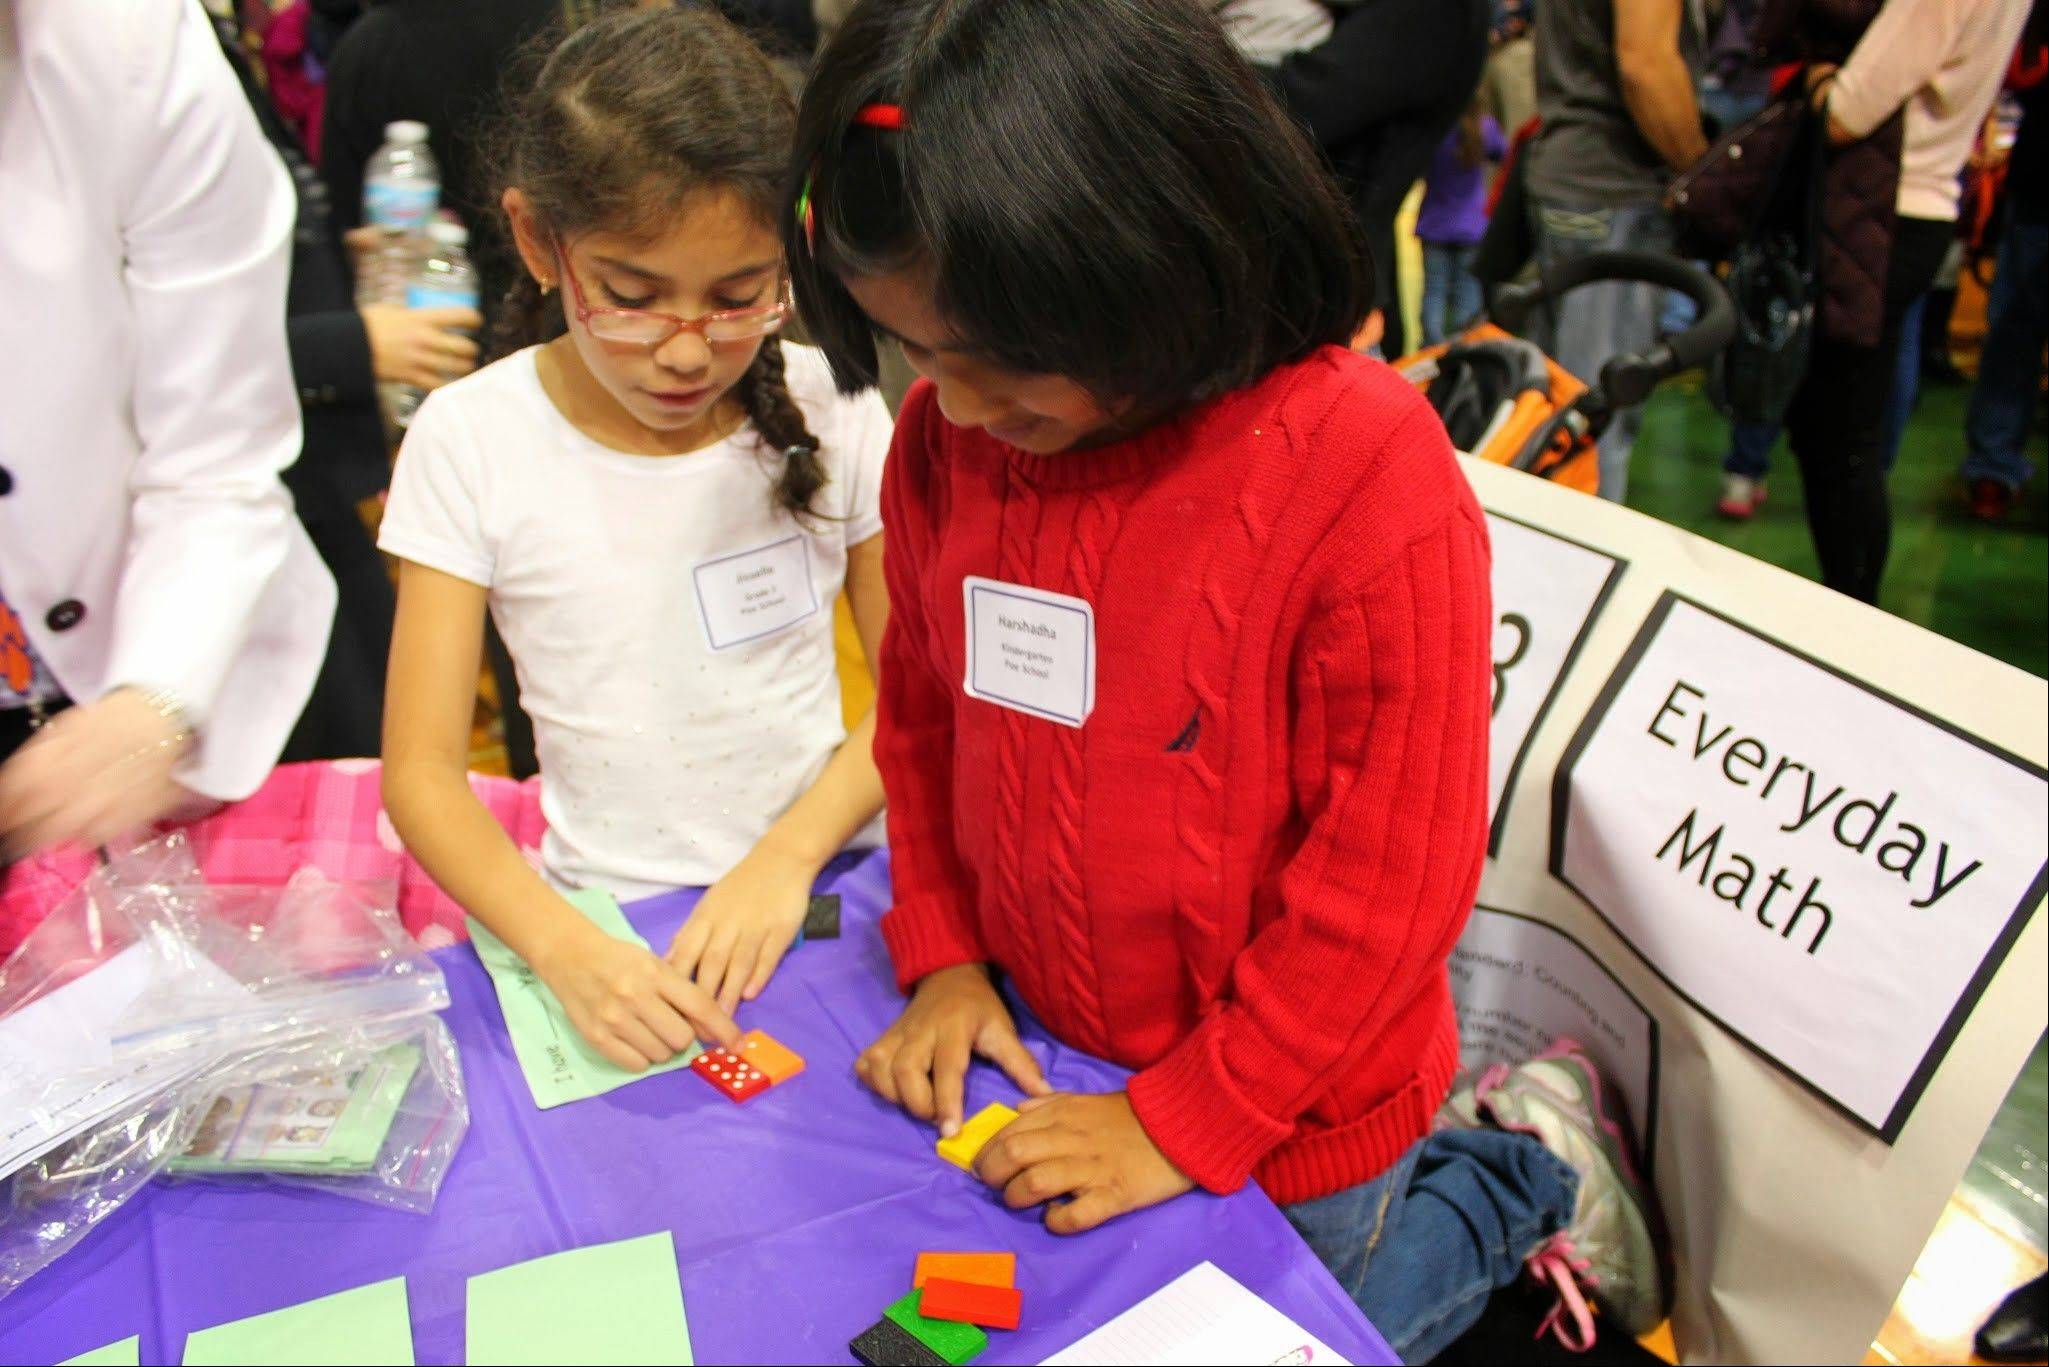 Third-grader Jisselle Gonzalez and kindergartner Harshadha Chaganti, both of Poe Elementary School in Arlington Heights, work together on a math game at District 21's annual State of the Schools event. Hundreds of people learned from students about their daily life in school.